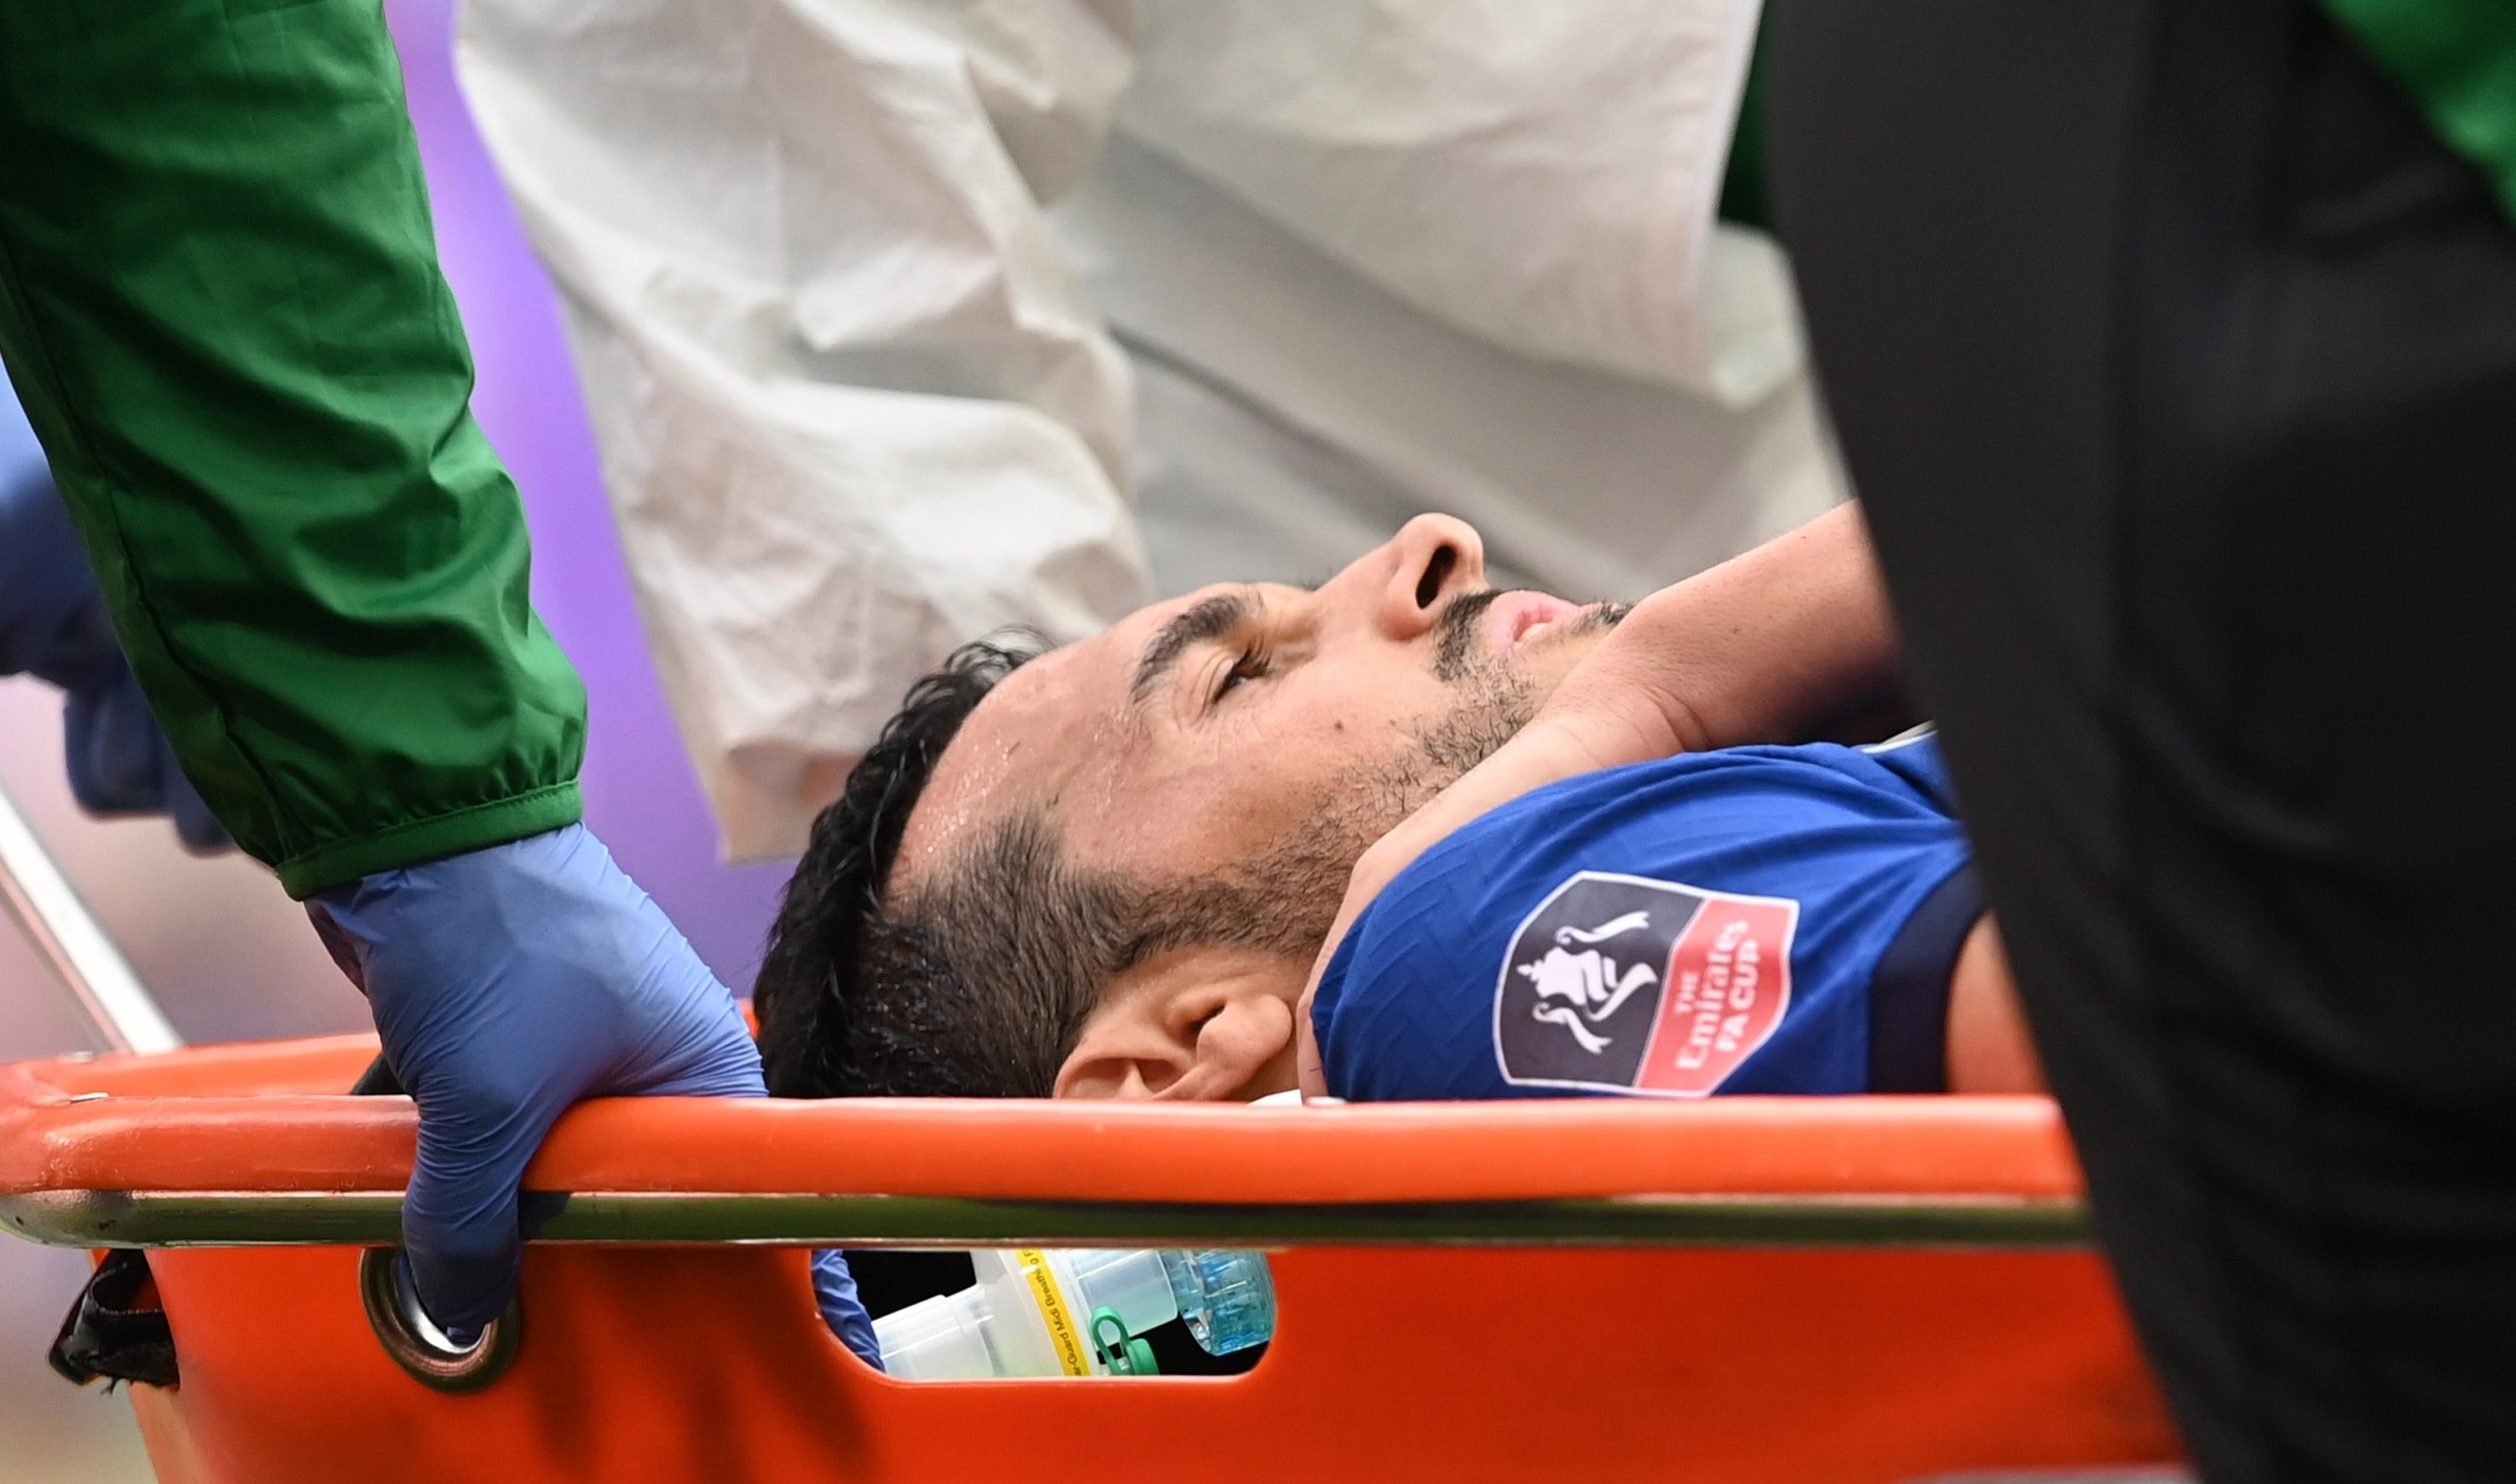 Pedro suffered a shoulder injury in the final stages of the game